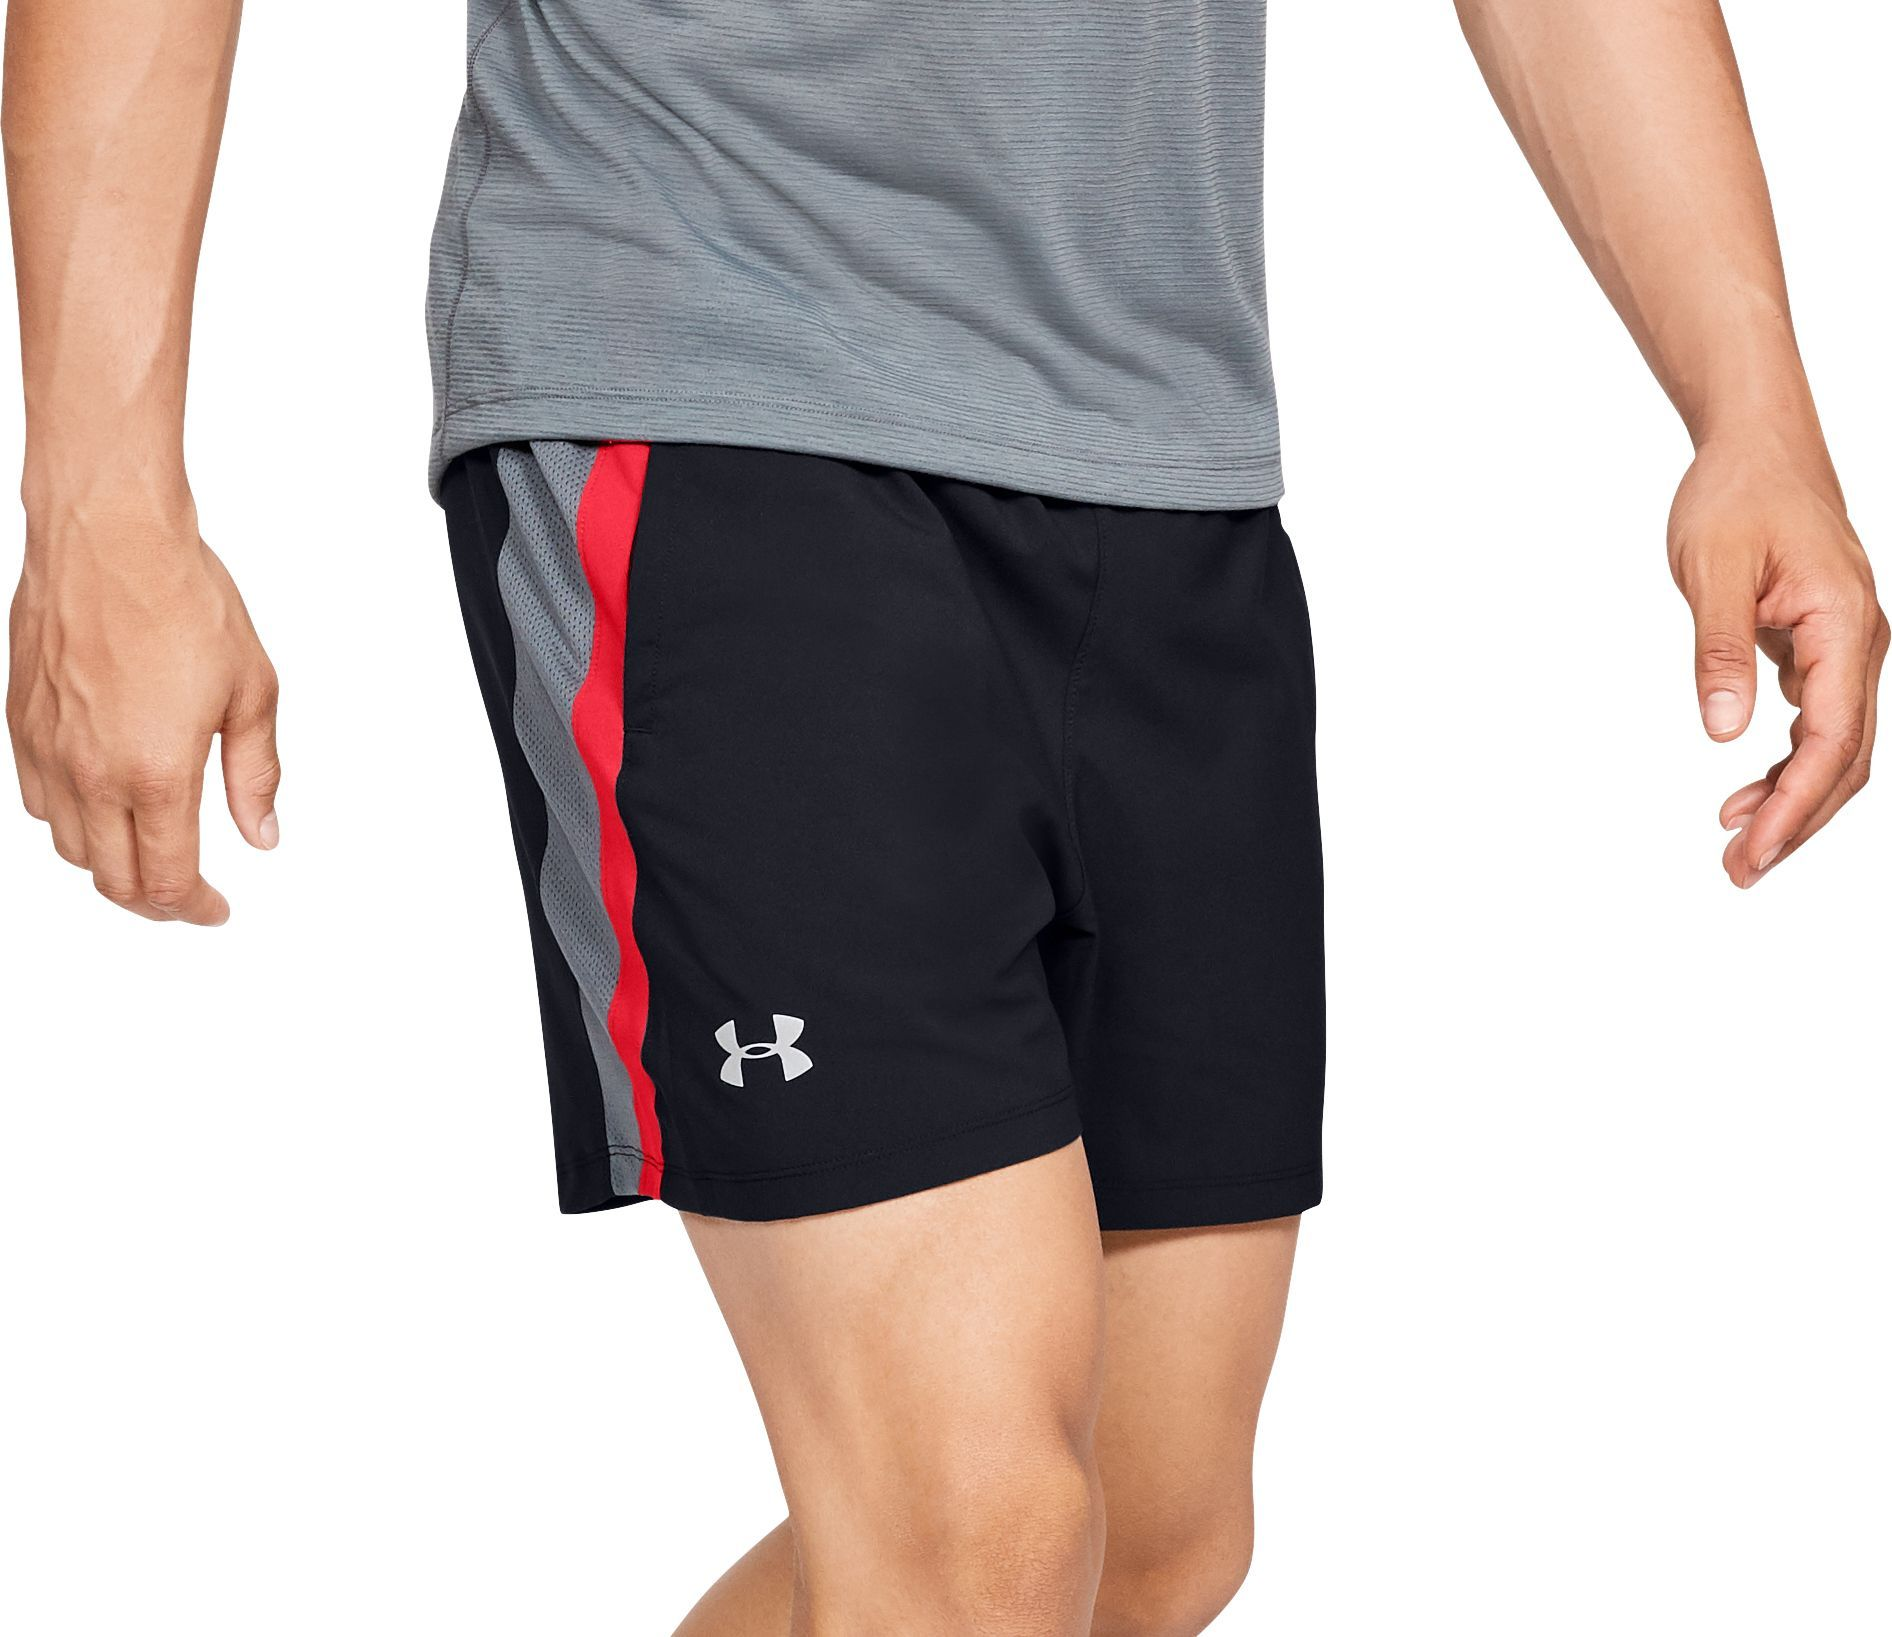 bfcdcd9a Under Armour Men's Launch SW 5'' Running Shorts in 2019   Products ...